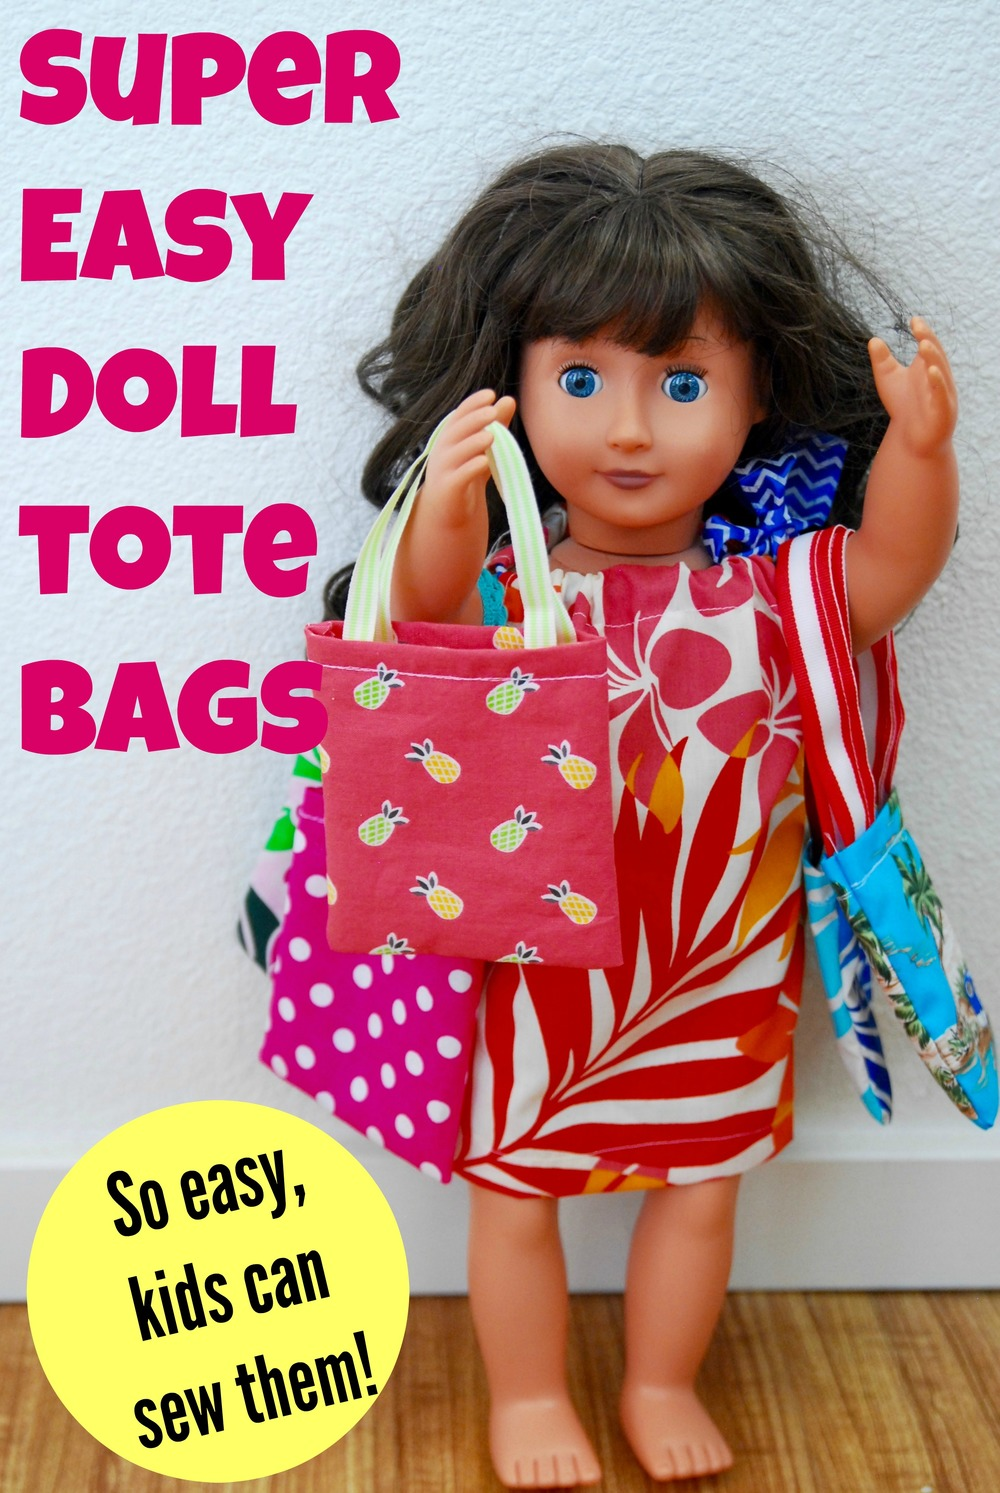 Doll Tote Bag Tutorial - How to make tote bags for dolls.